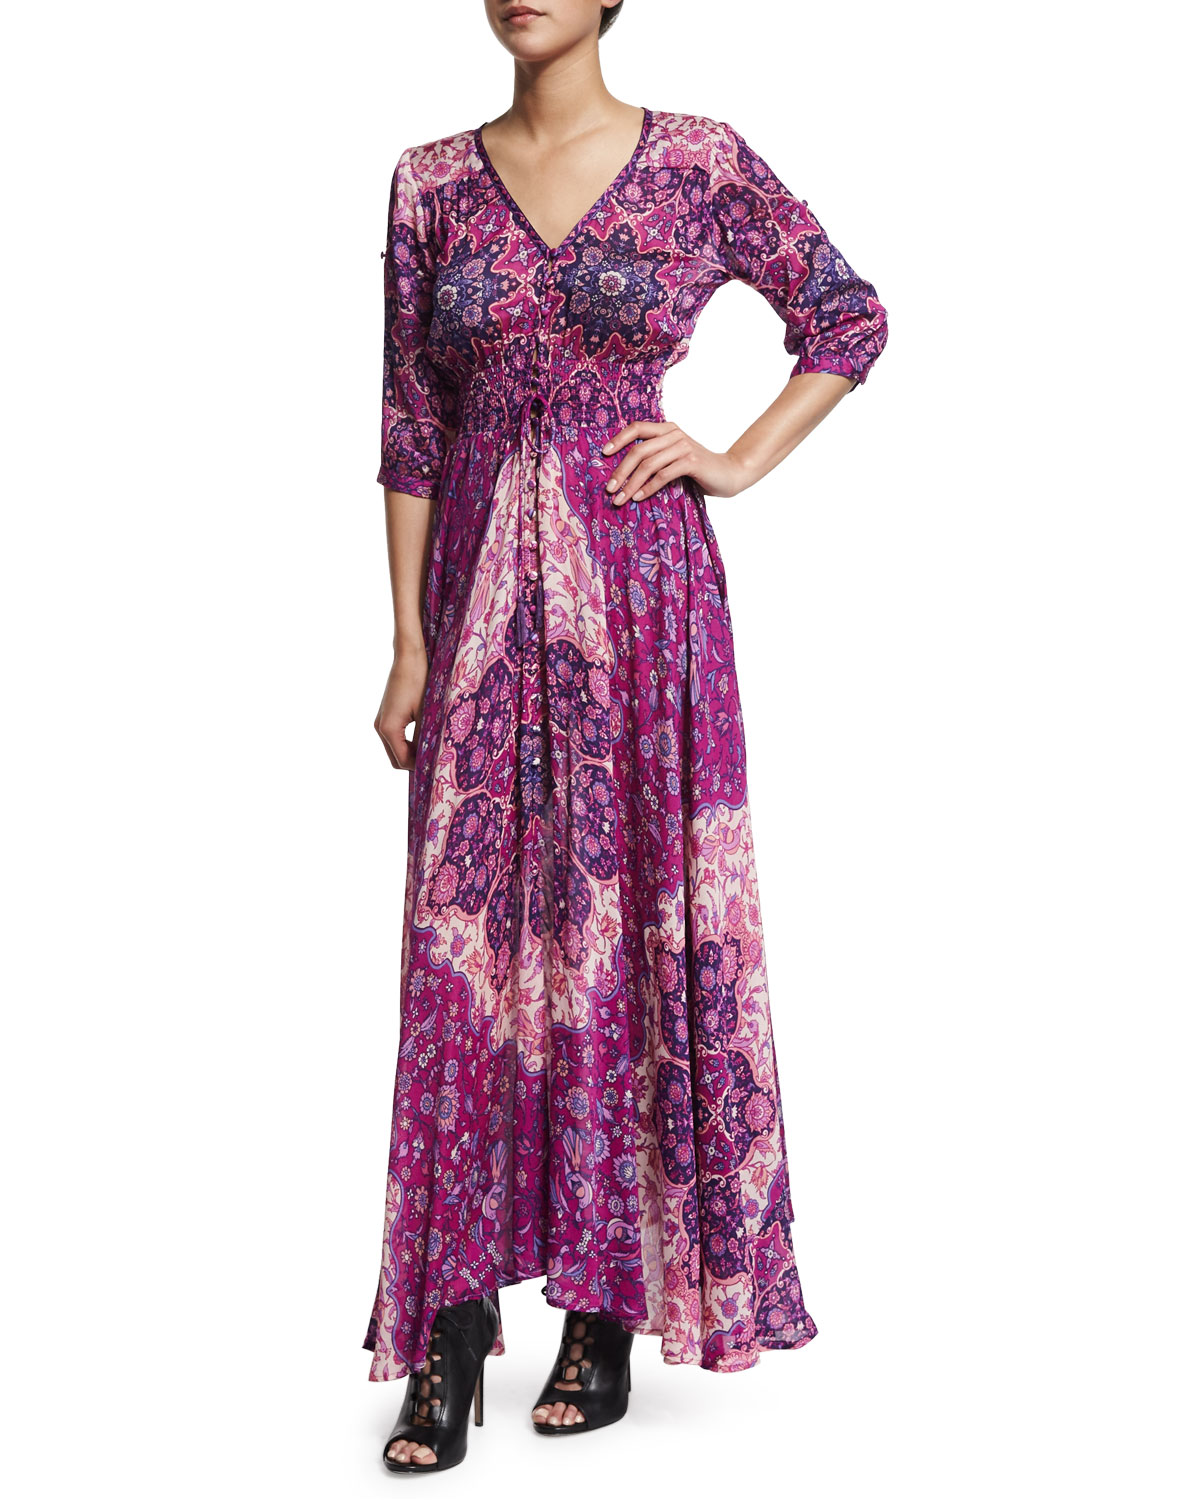 Spell Designs Kiss the Sky Georgette Gown, Violet | Neiman Marcus